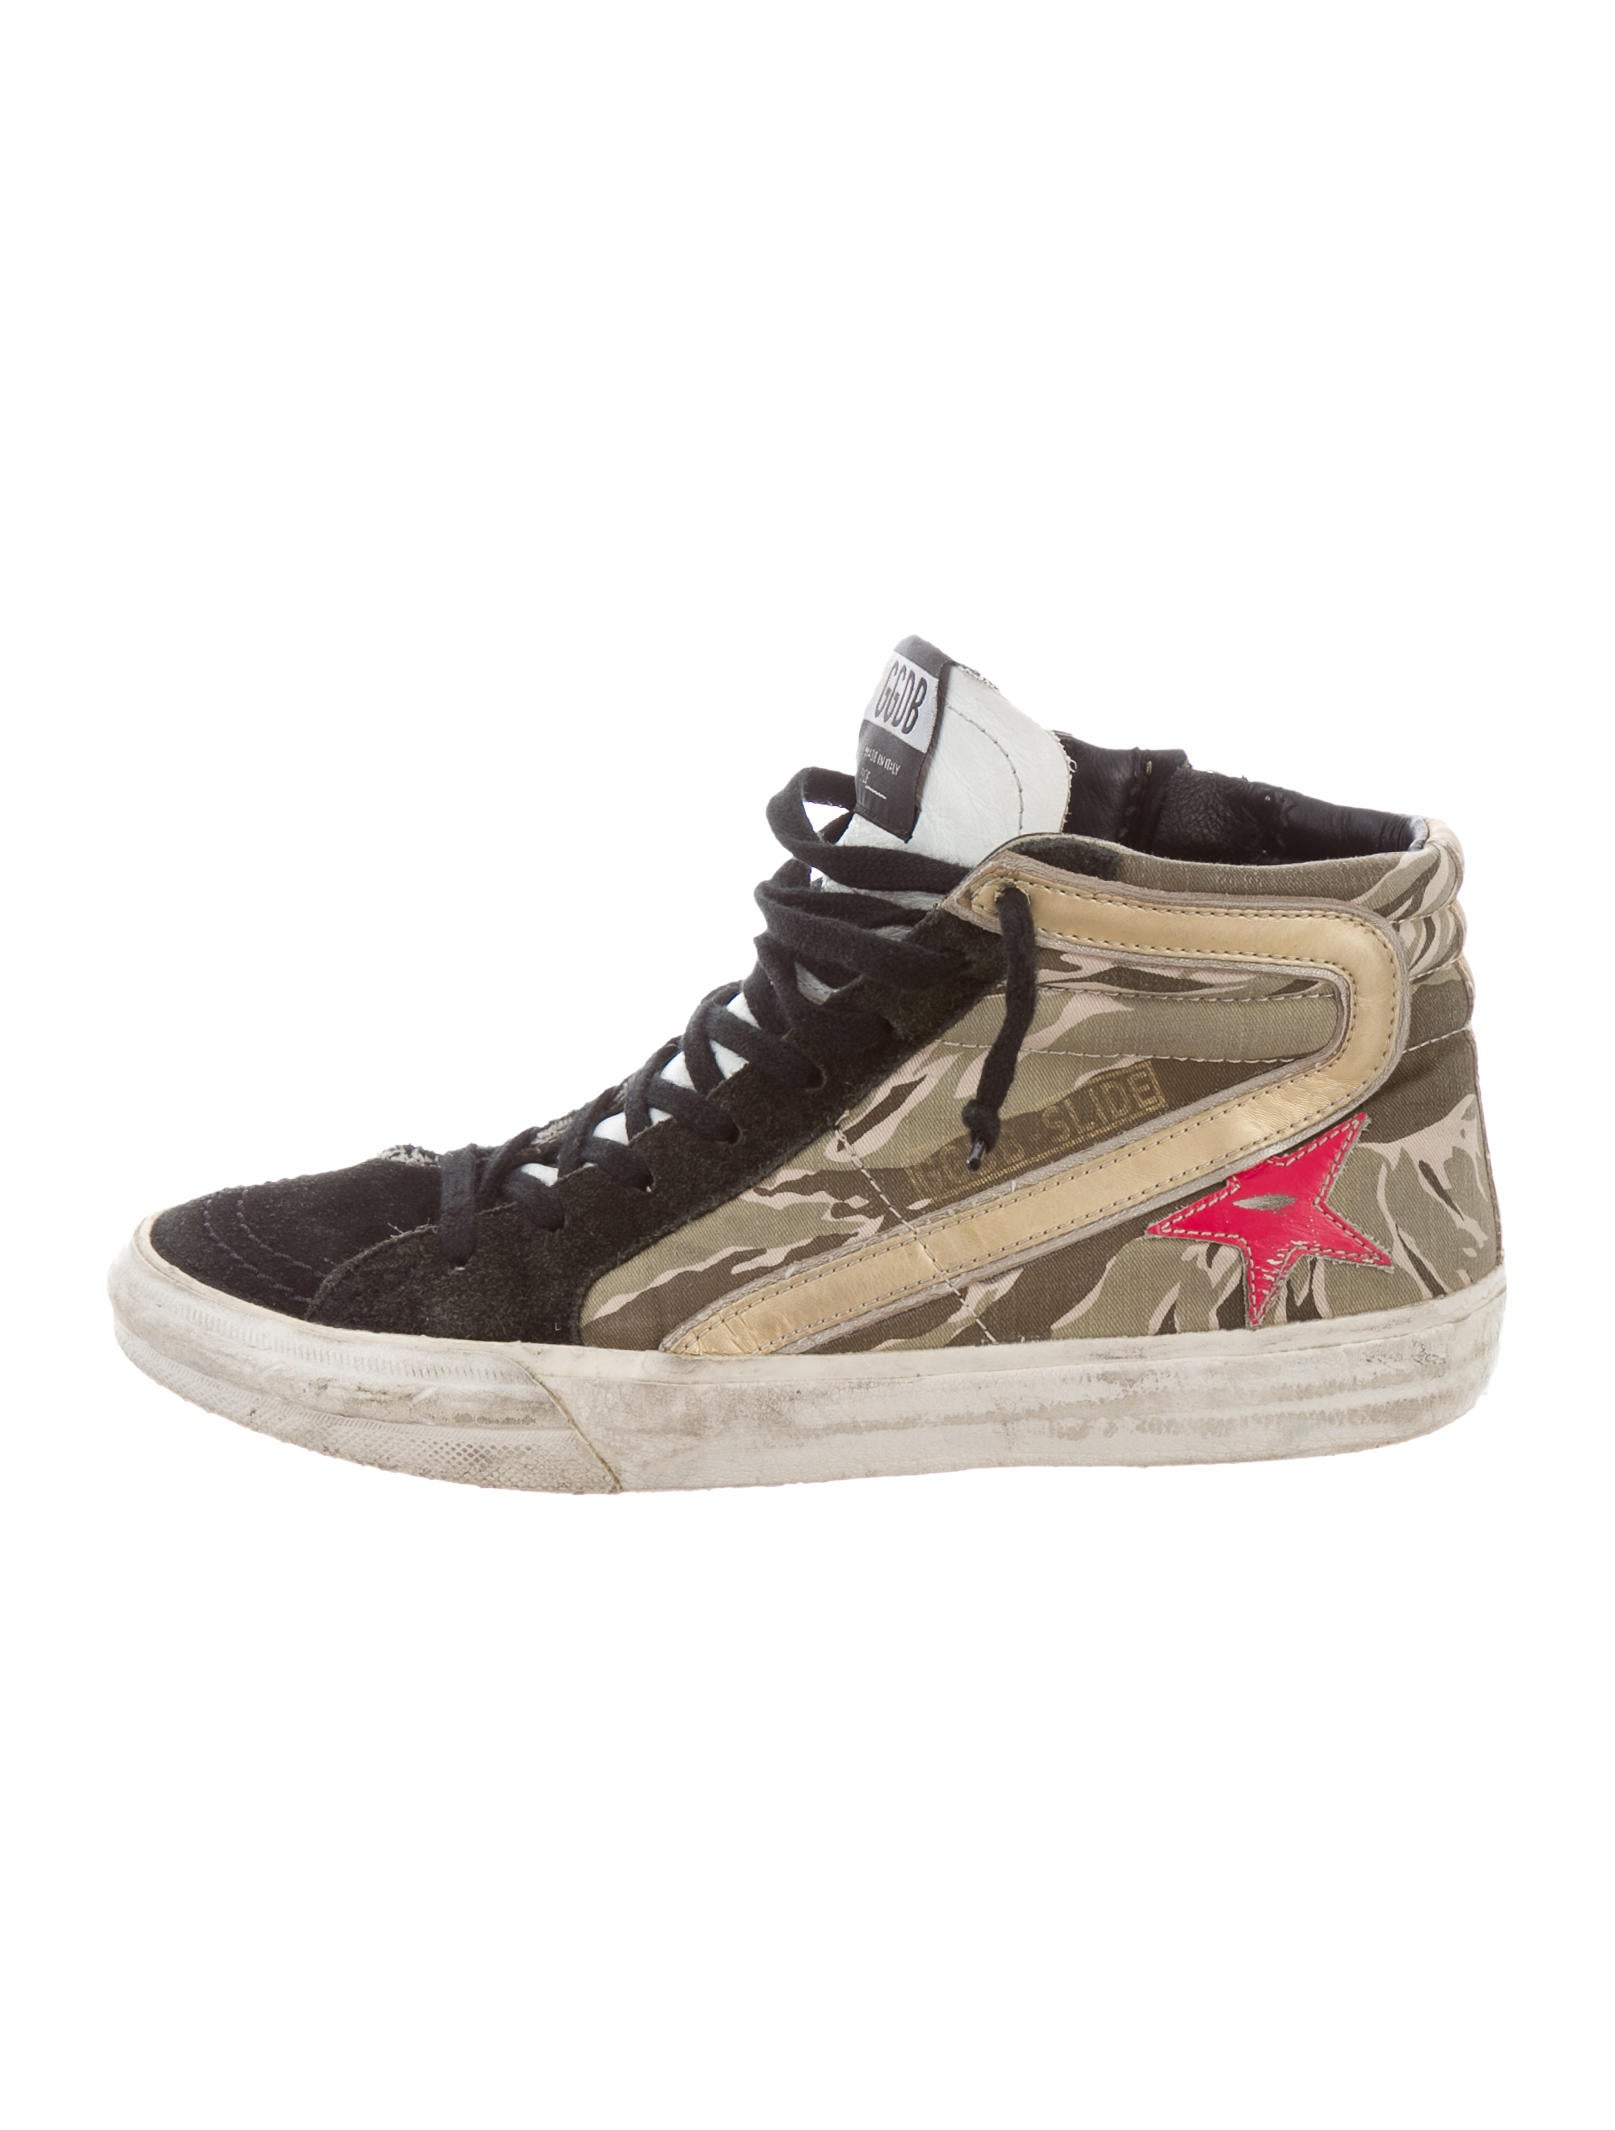 golden goose superstar high top sneakers shoes wg524316 the realreal. Black Bedroom Furniture Sets. Home Design Ideas